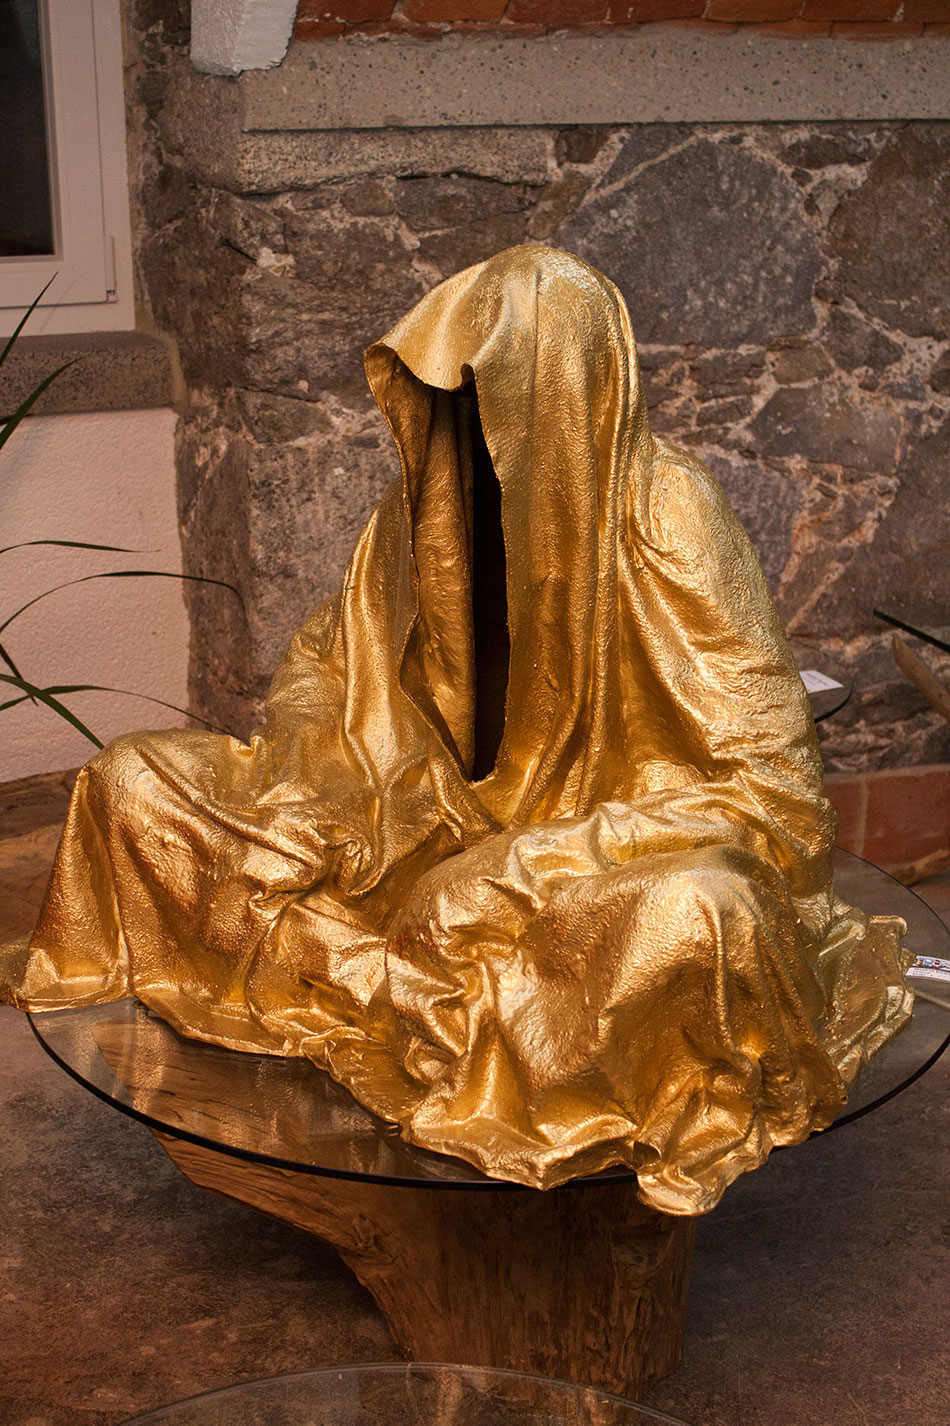 mobile-galerie-gall-toko06-linz-25er-turm-guardians-of-time-manfred-kielnhofer-contemporary-fine-art-design-sculpture-2661